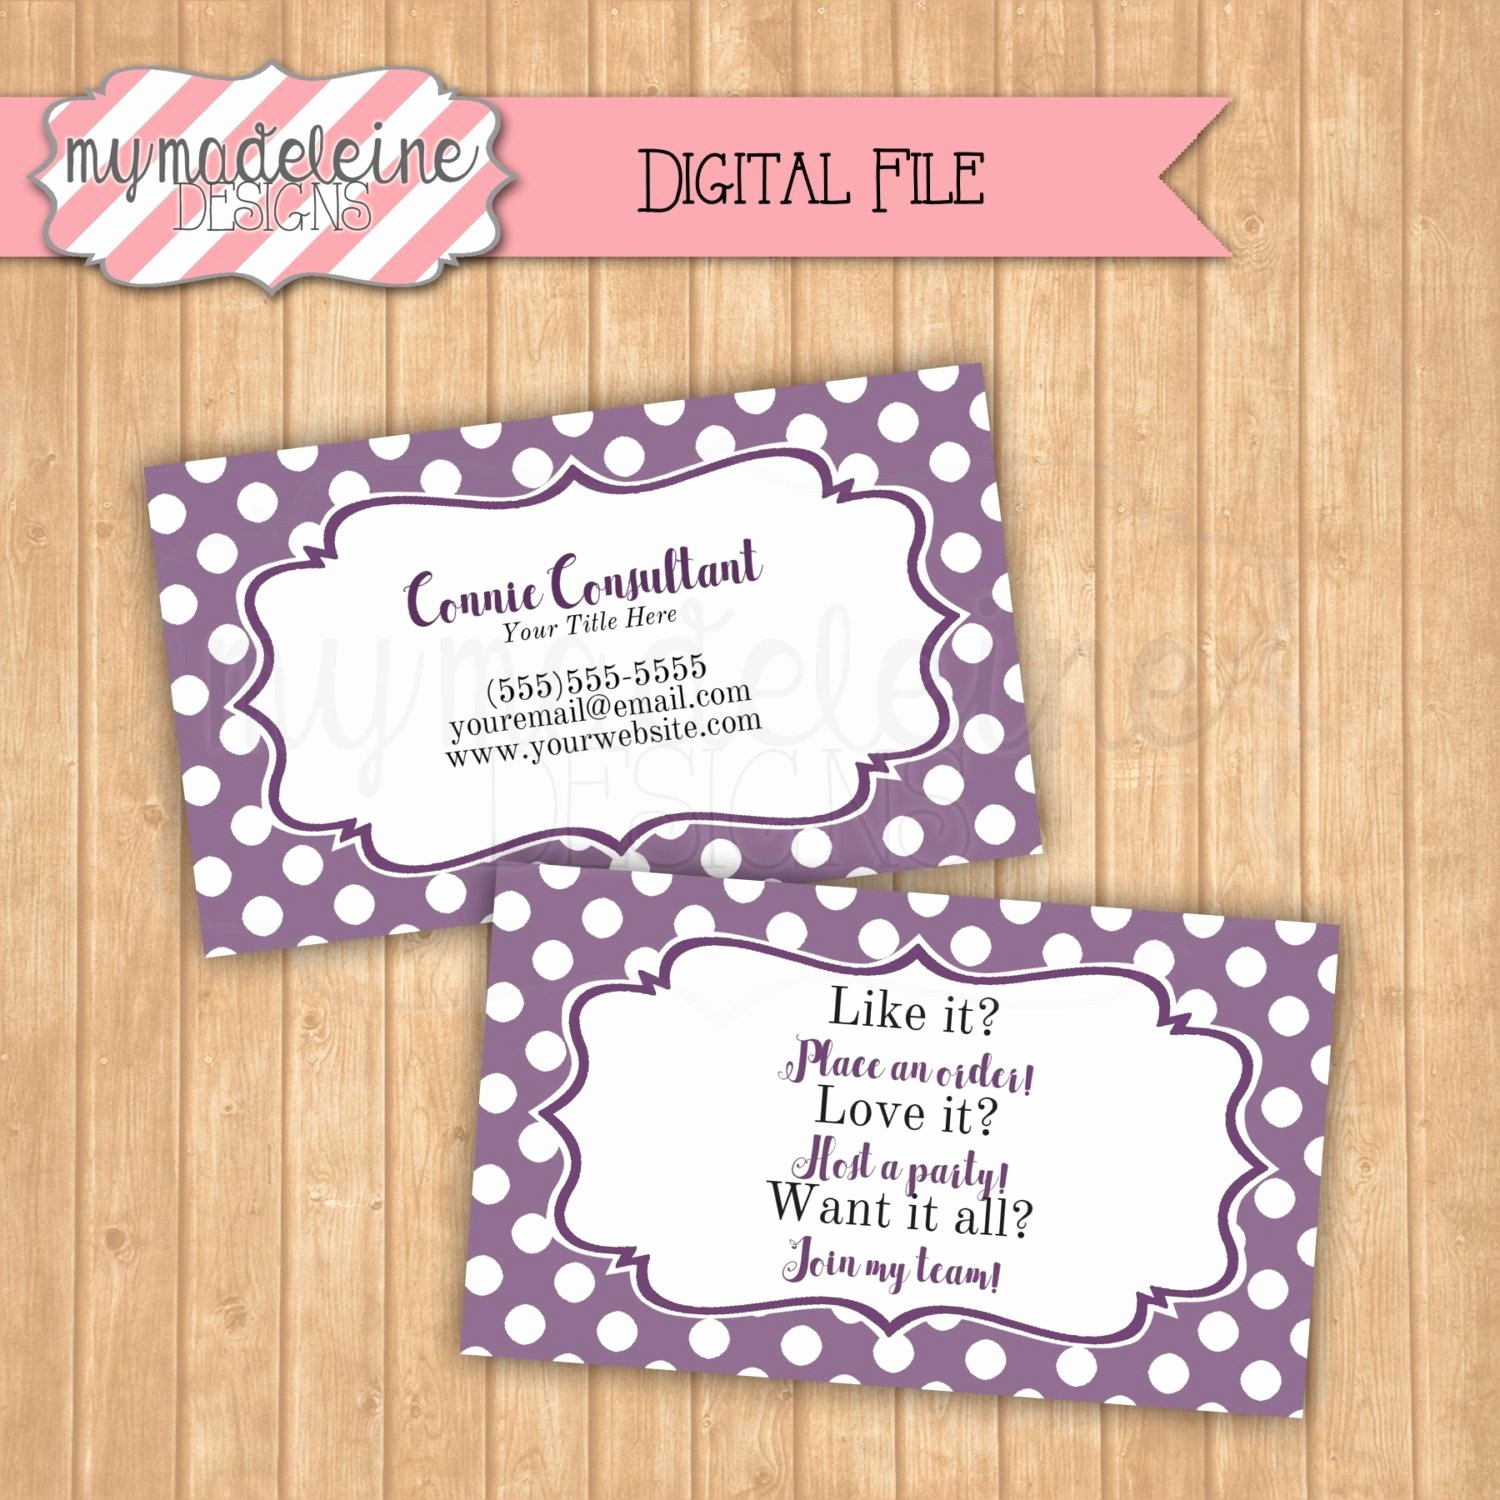 20 Scentsy Business Card Template New Scentsy Business Card Template - Free Printable Scentsy Business Cards